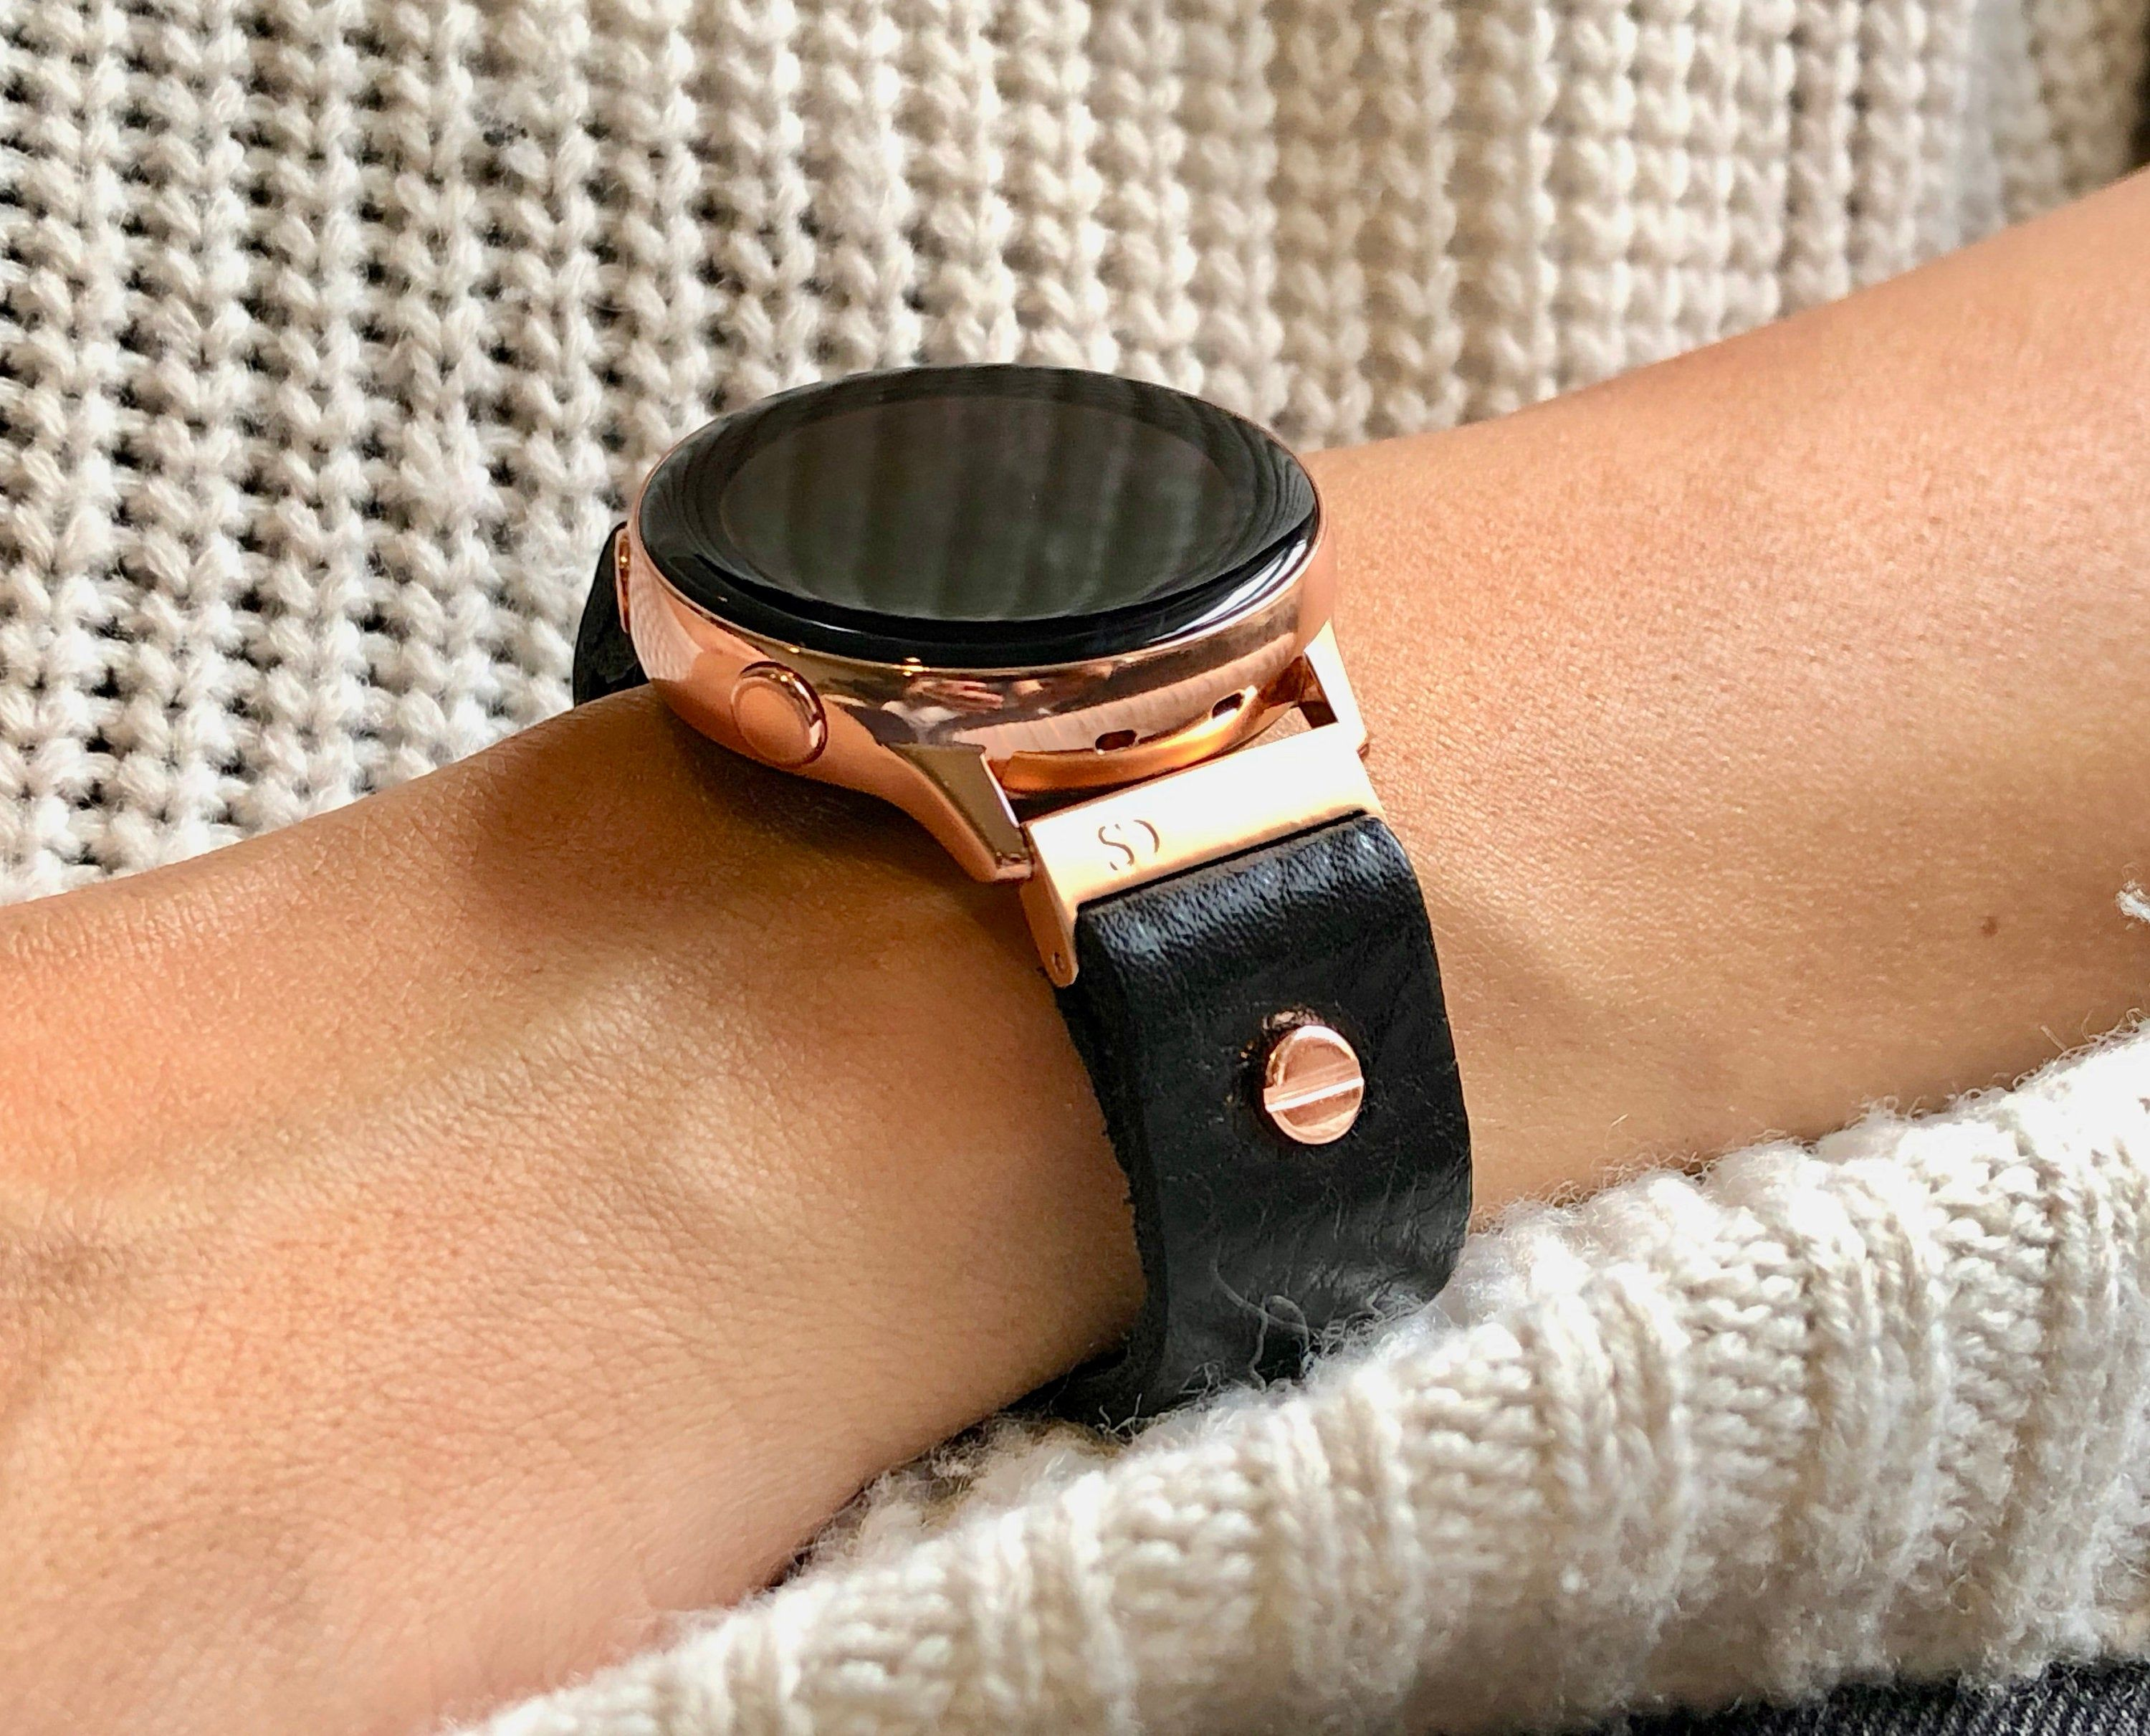 High Quality Grain Genuine Leather Strap Band Compatible With Galaxy Watch 42mm Galaxy Watch A Black Leather Watch Strap Black Leather Leather Watch Strap